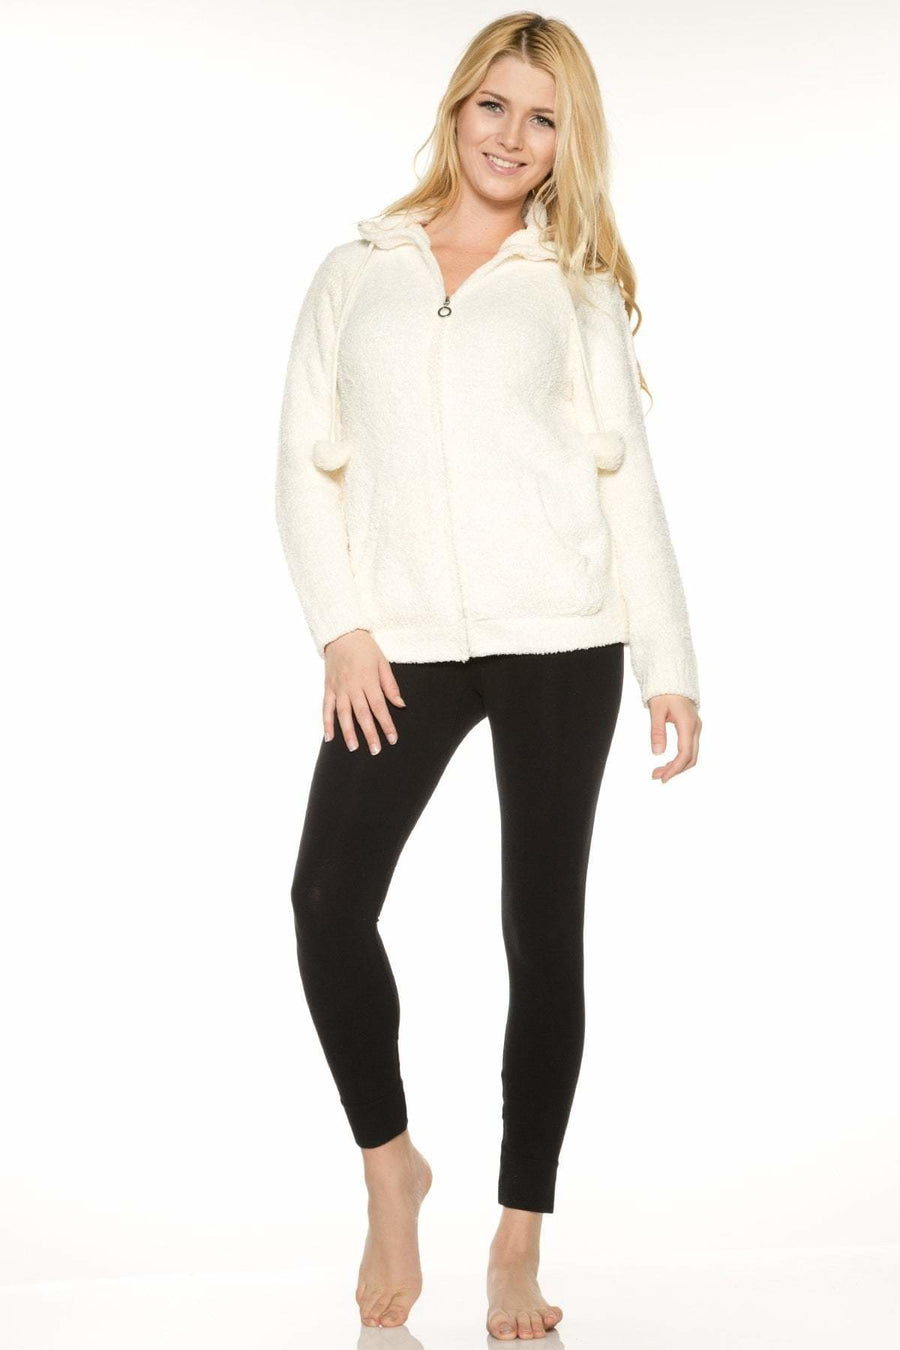 Marshmallow Zip Front Jacket - Rhonda Shear